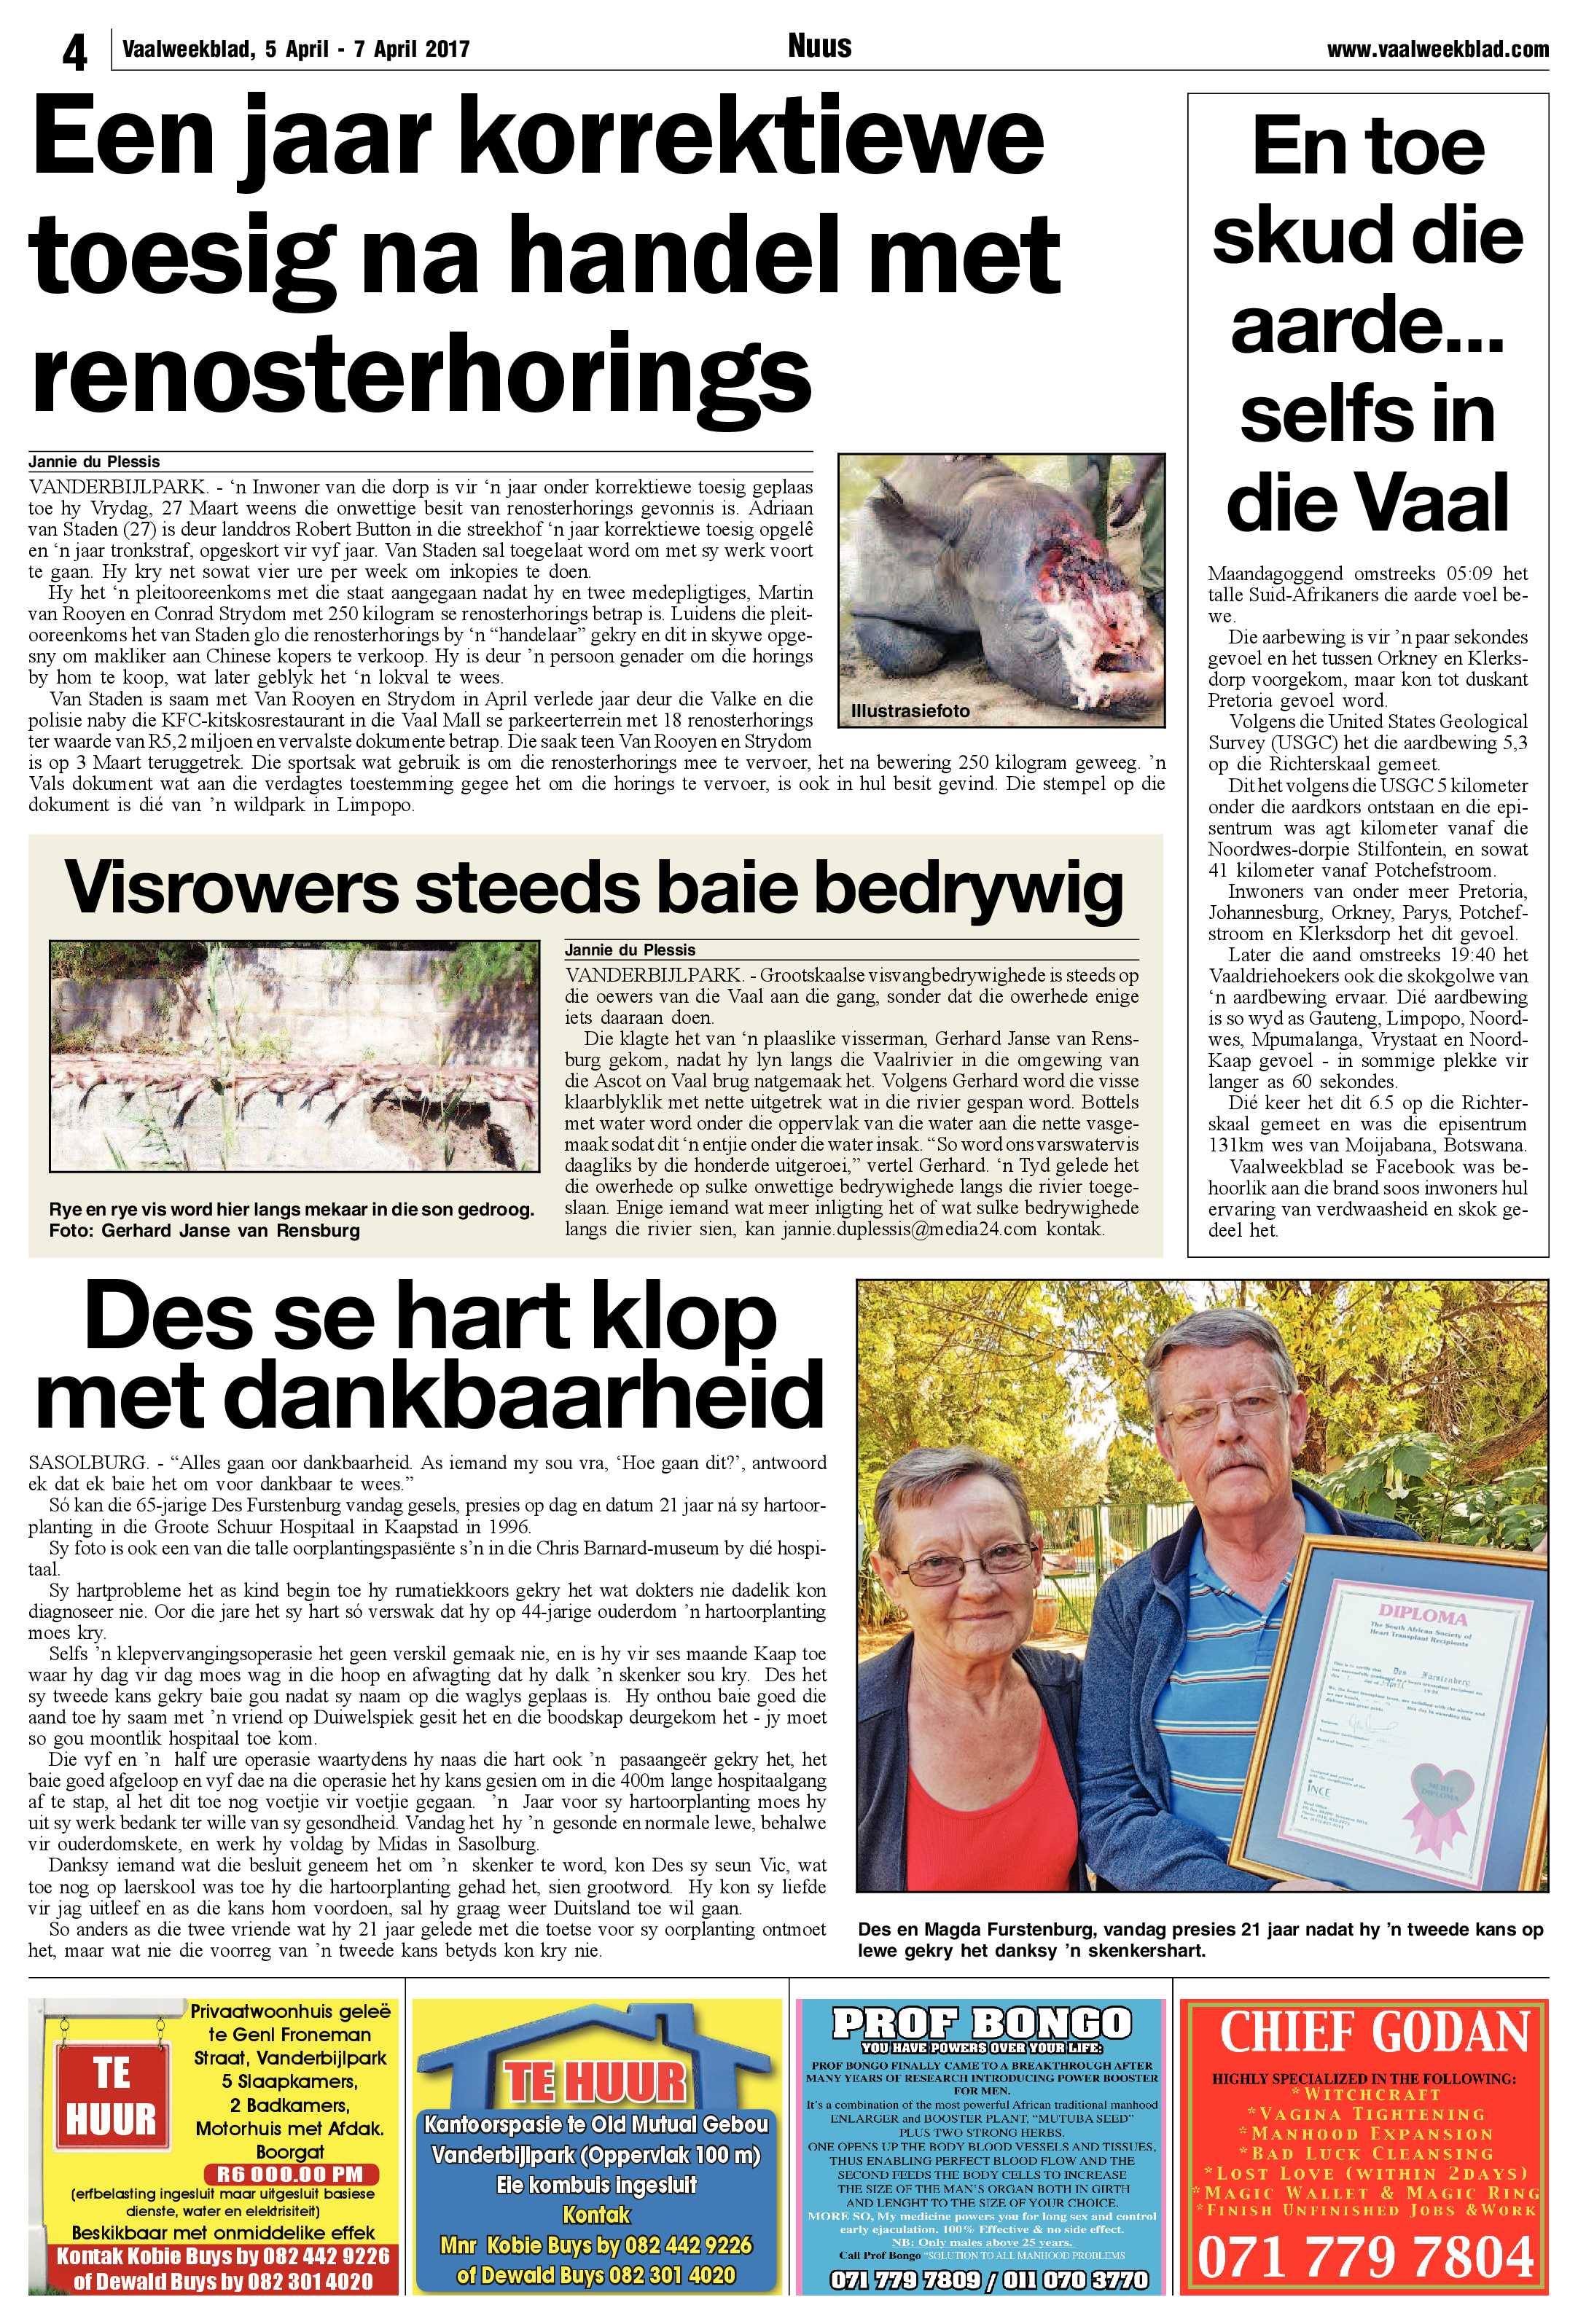 vaalweekblad-5-7-april-2017-2-epapers-page-4